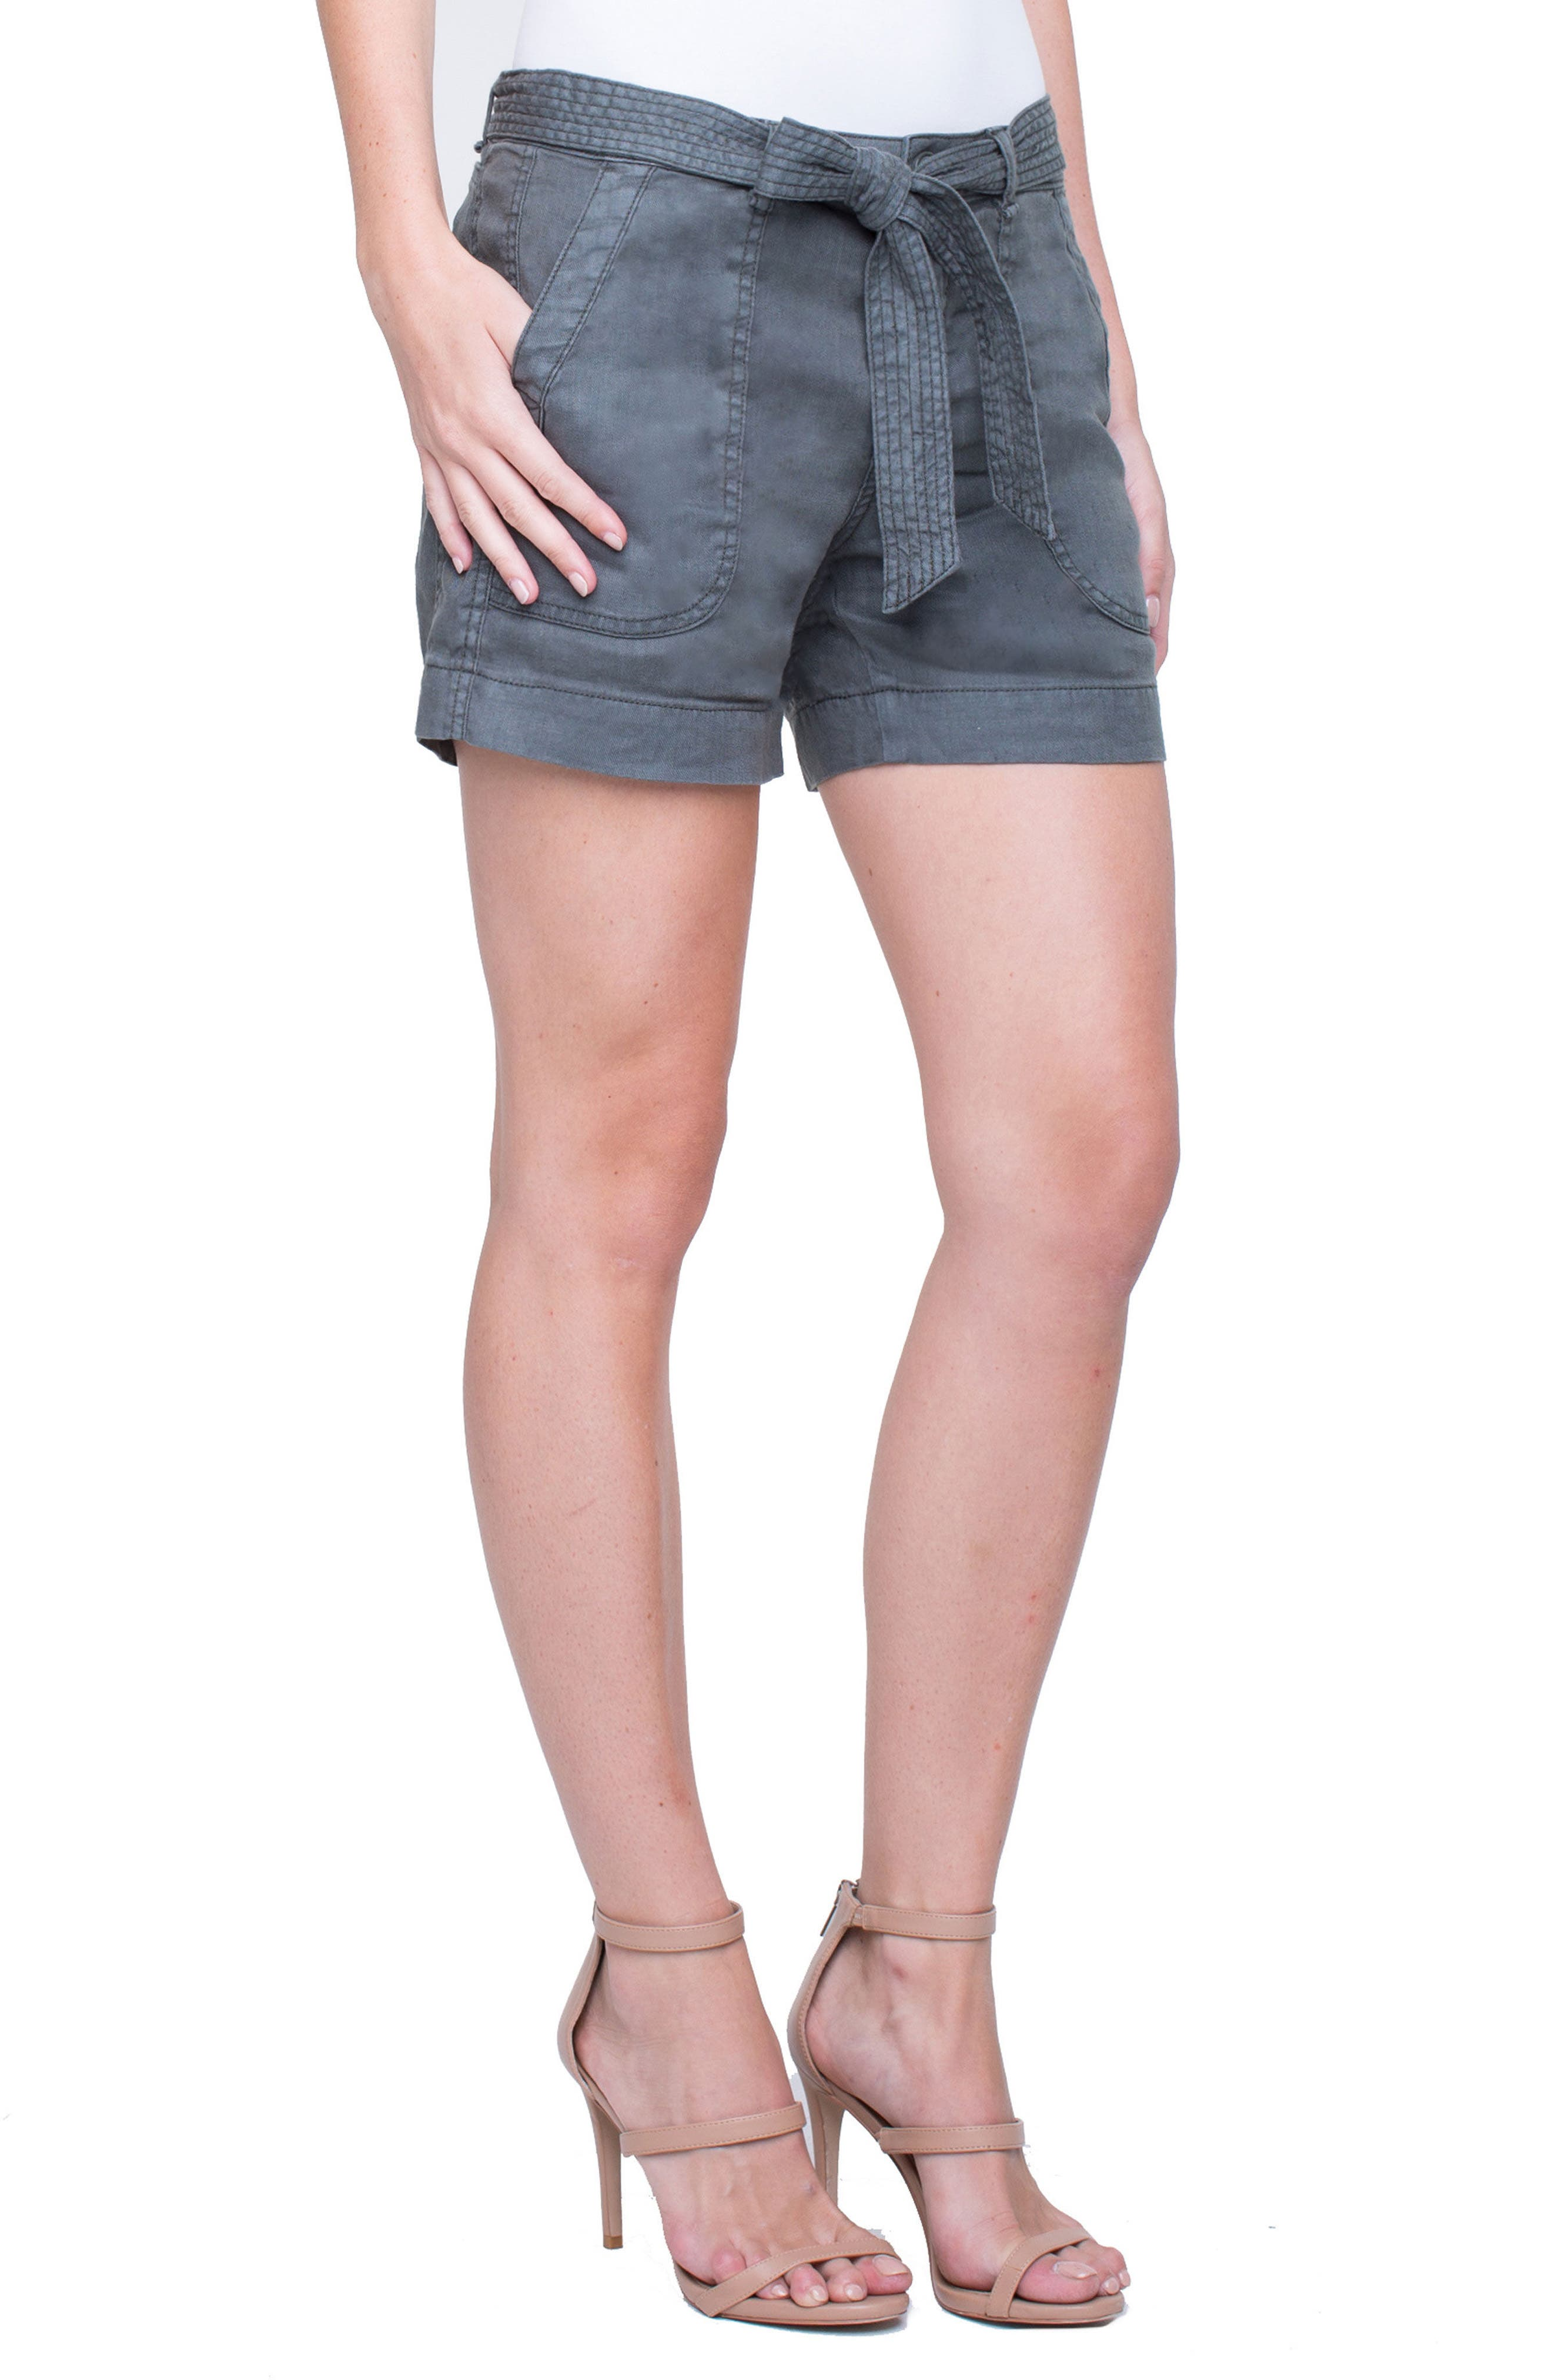 LIverpool Jeans Company Kinley Stretch Linen Shorts